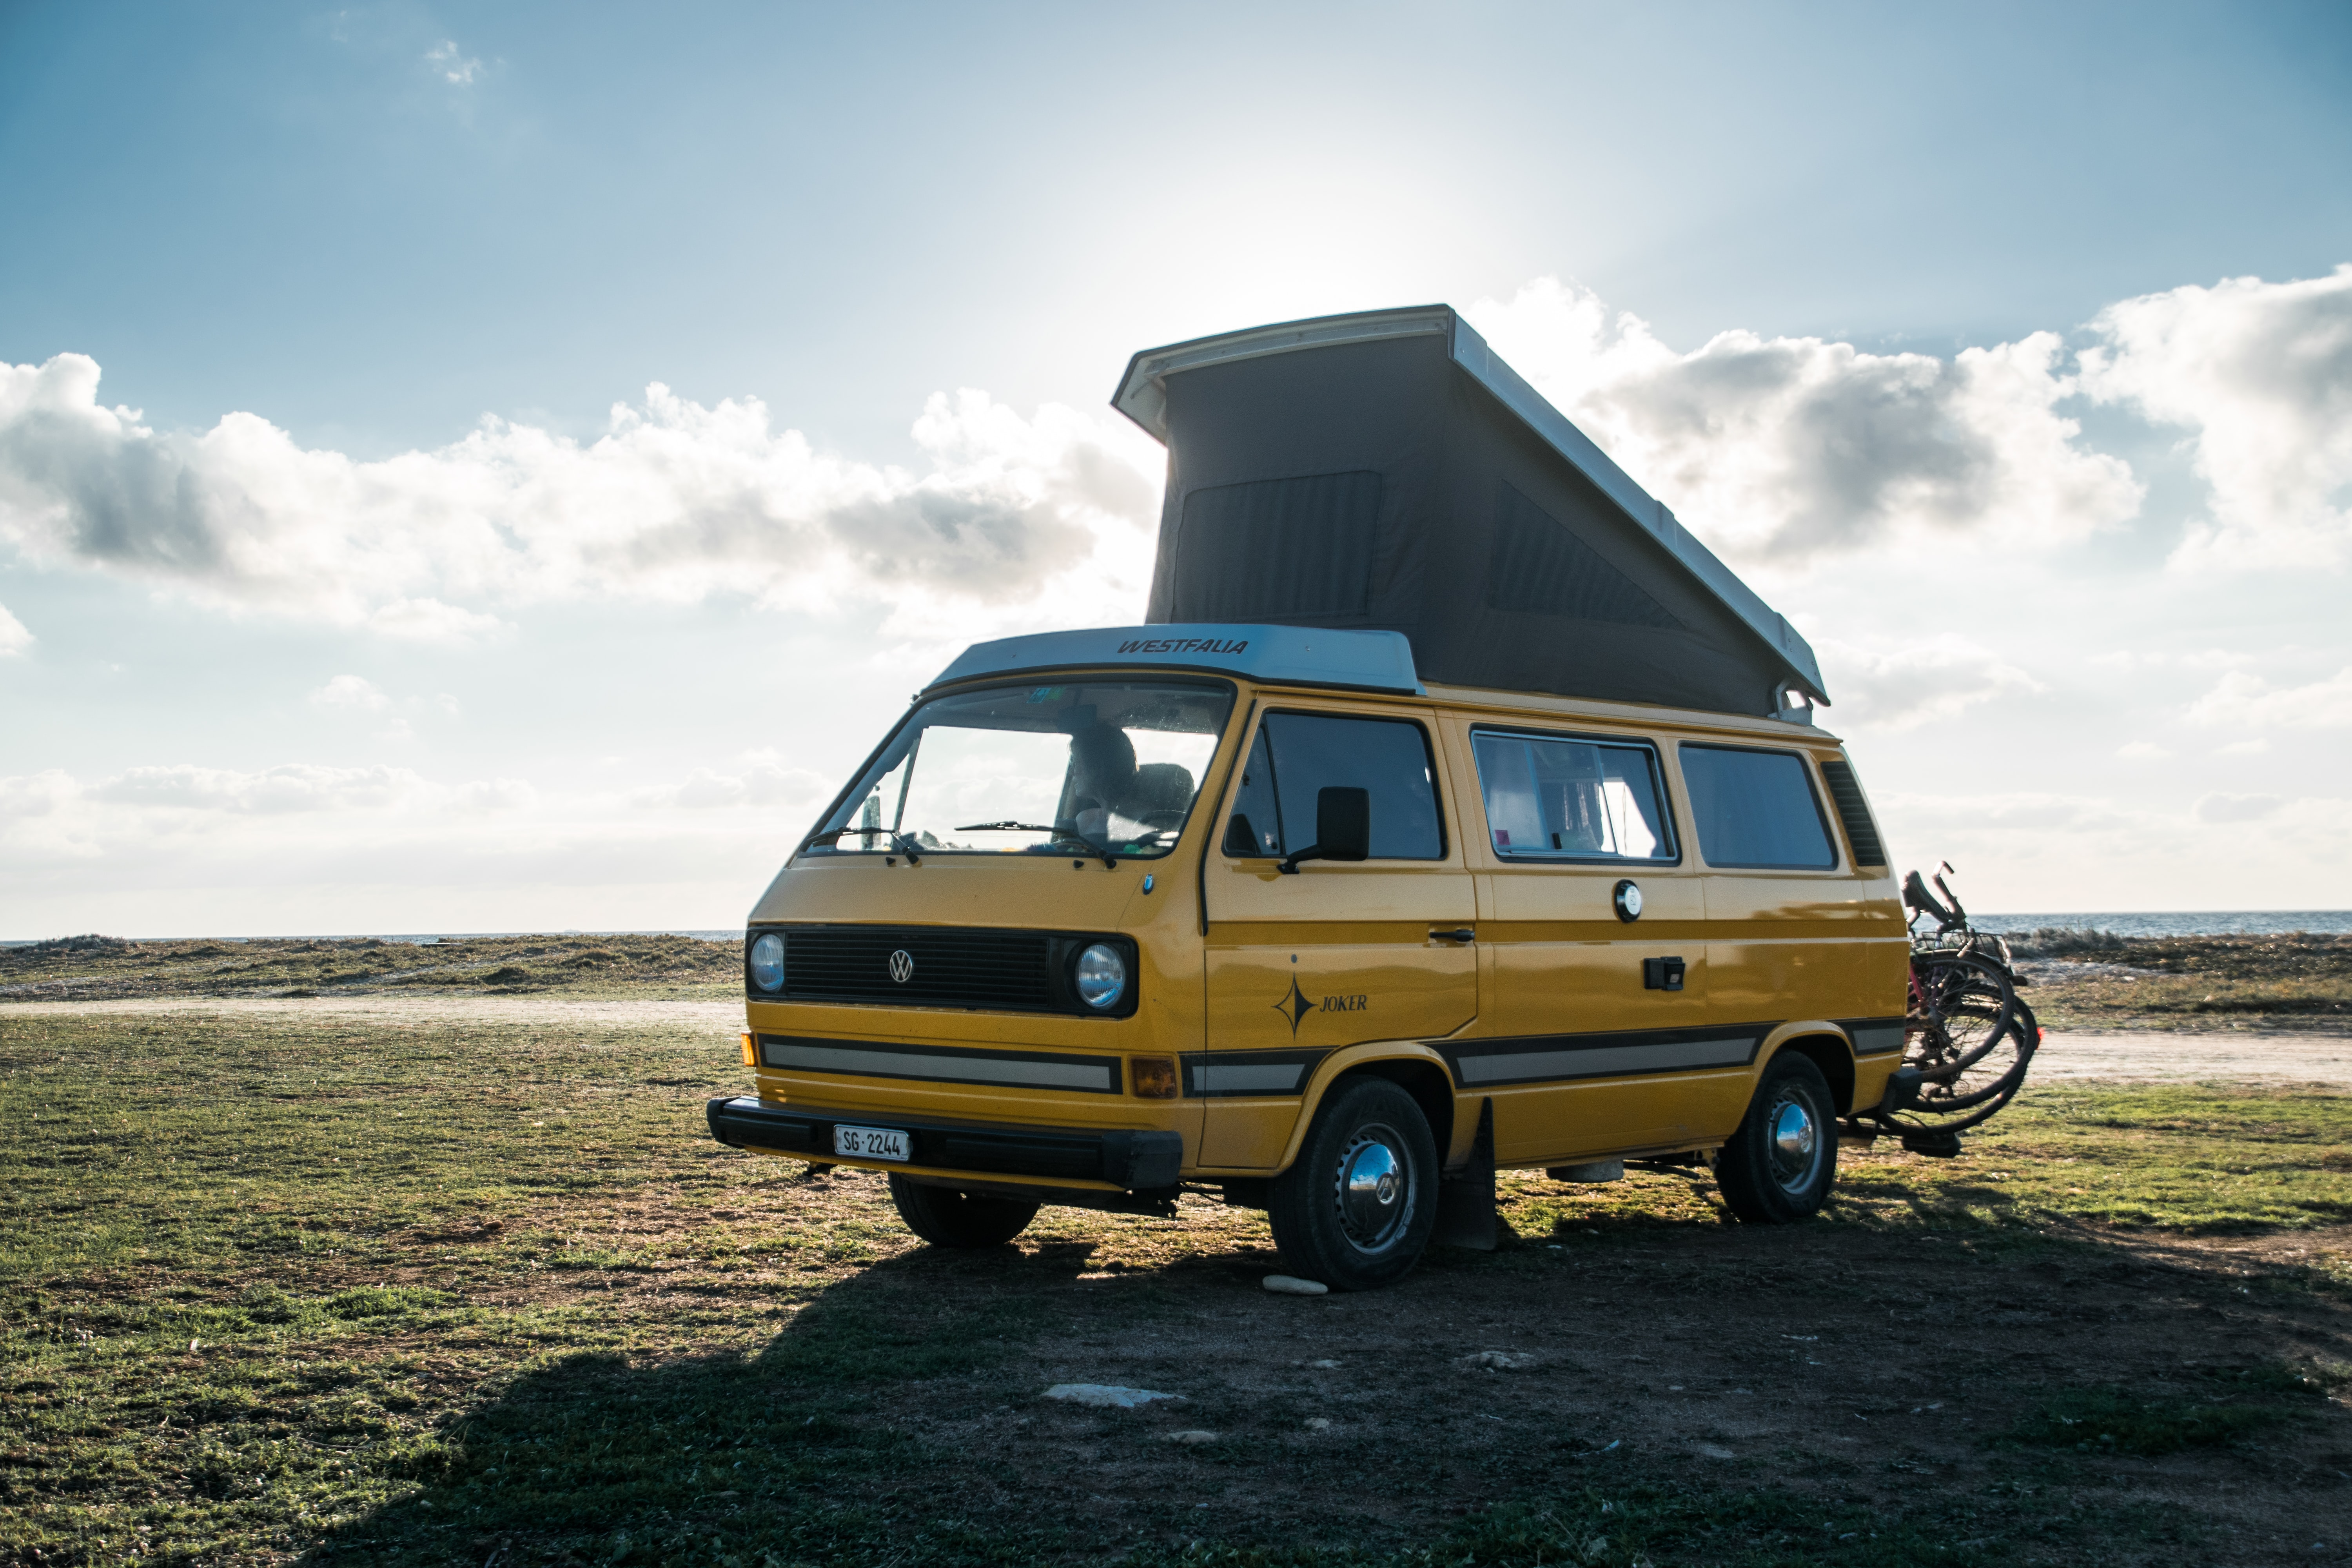 yellow Renault van parked on green grass at daytime